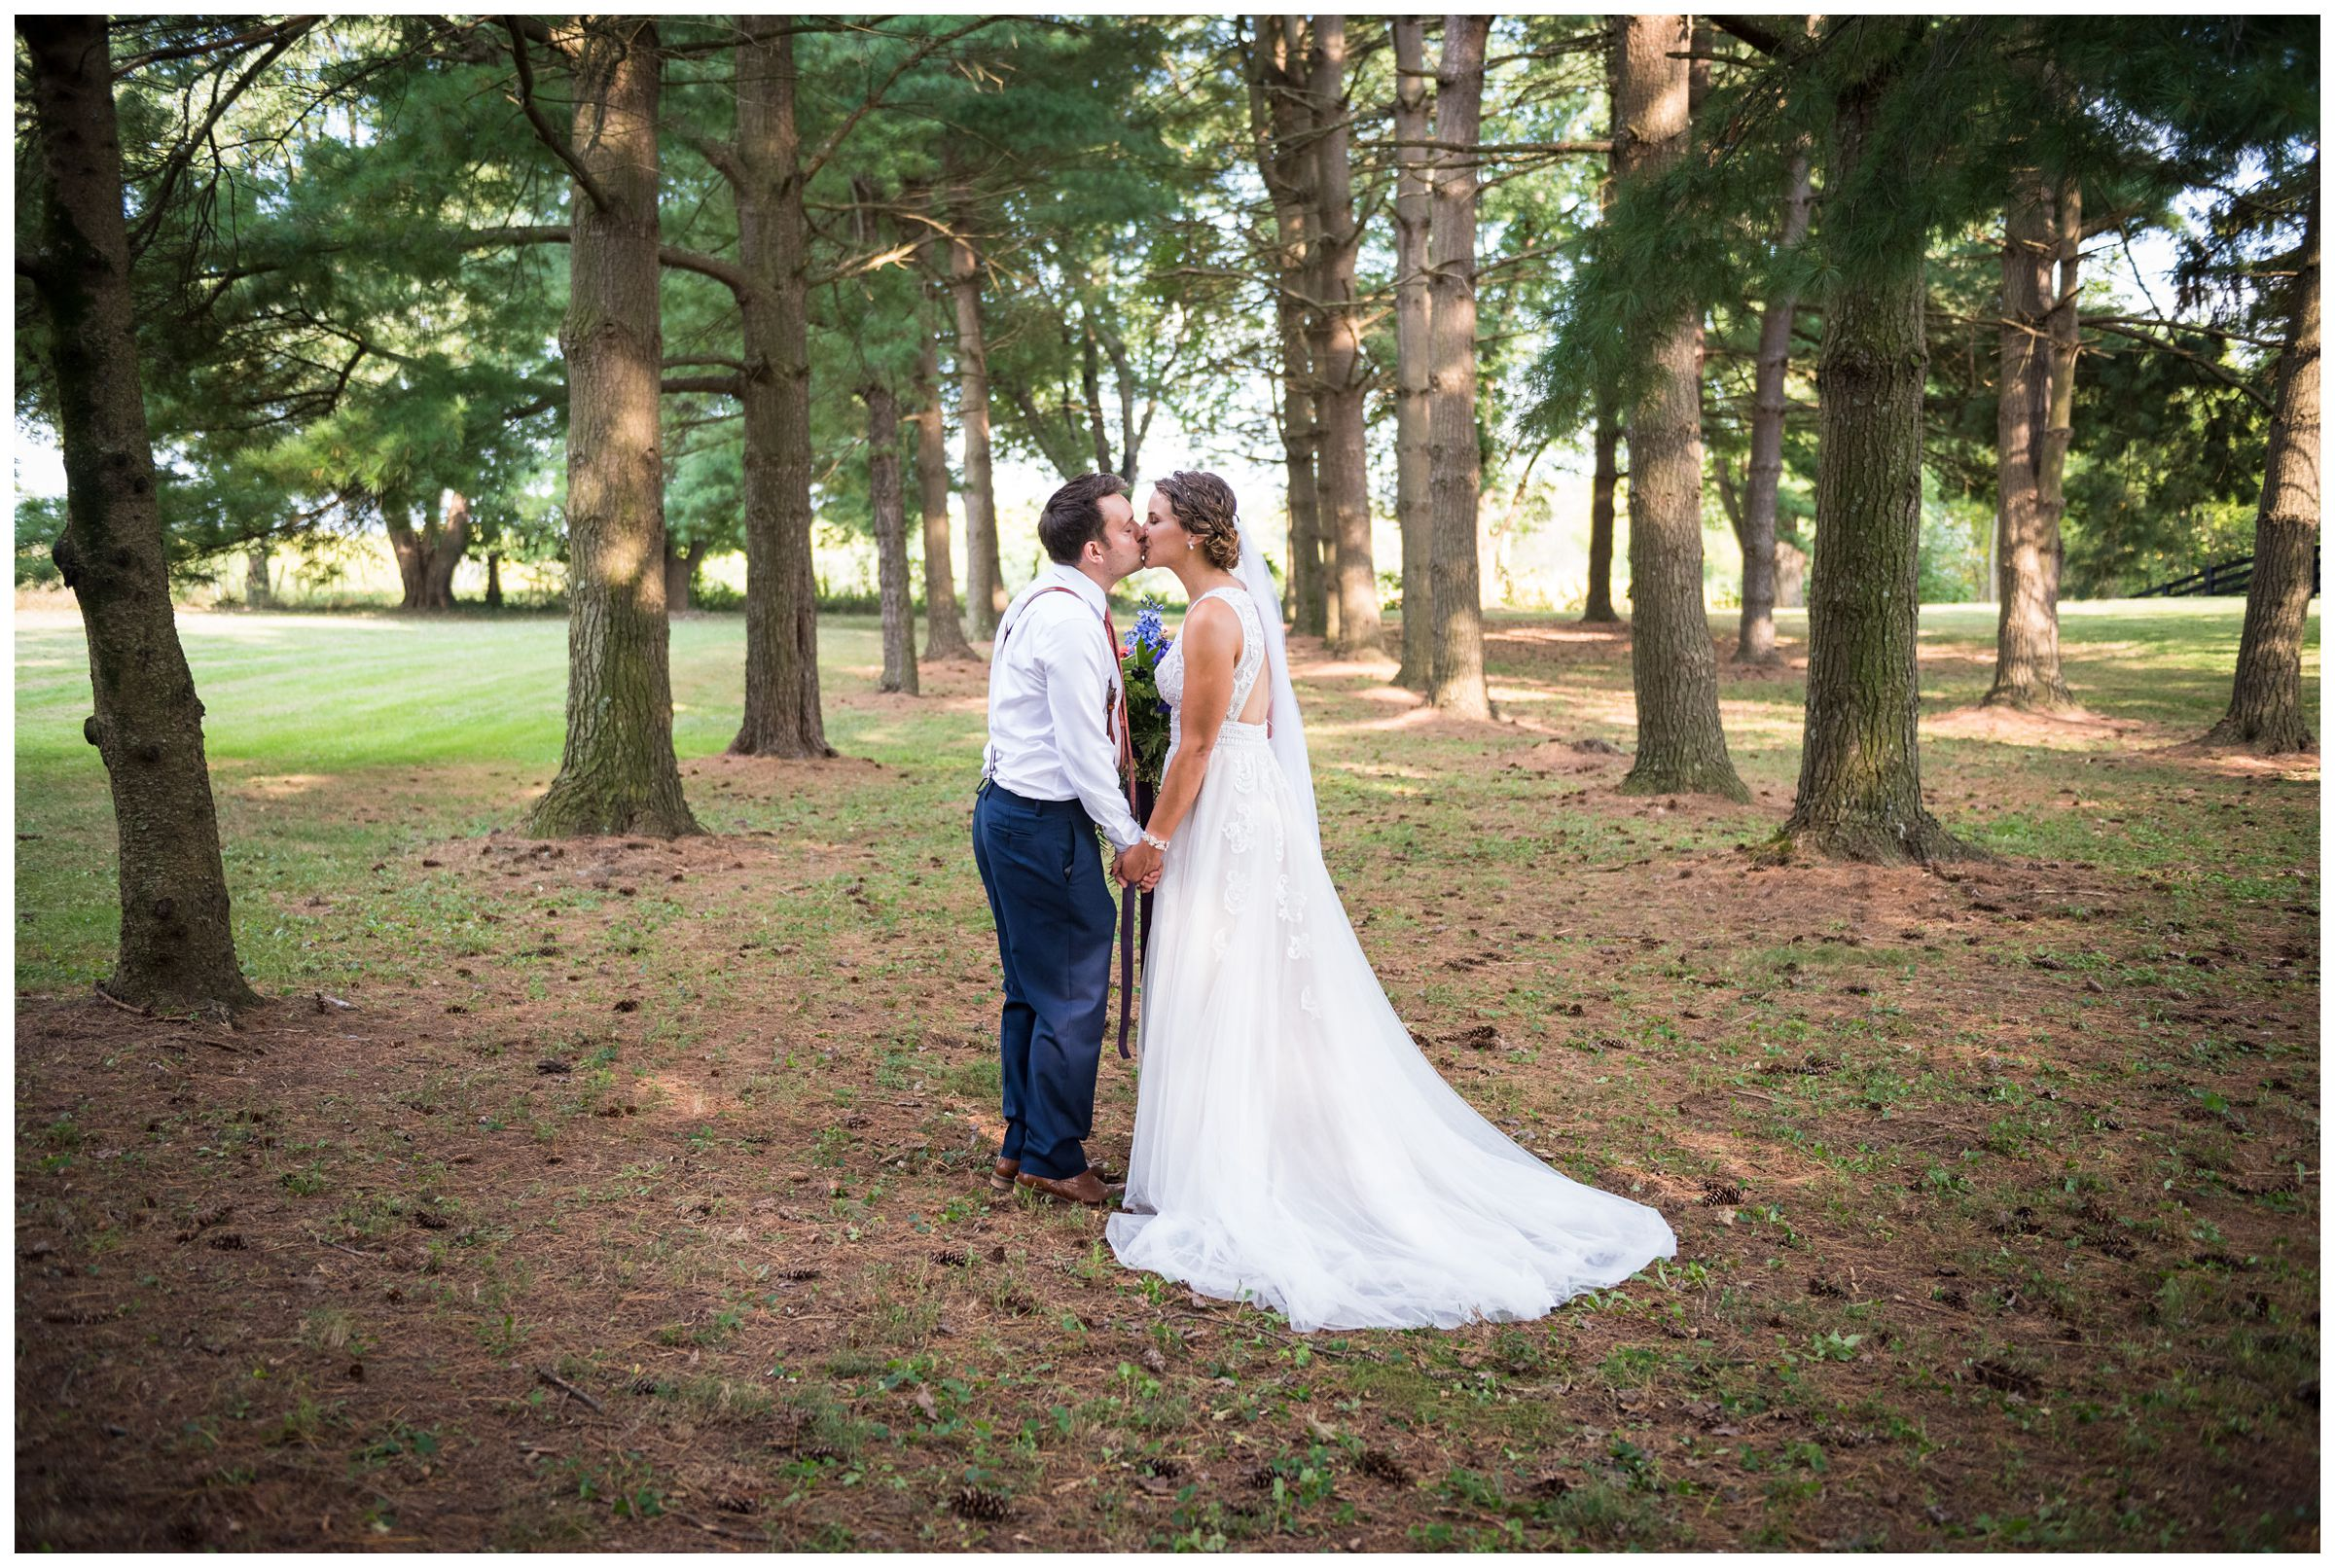 bride and groom wedding portraits under pine tree forest during rustic barn wedding in Lancaster, Ohio